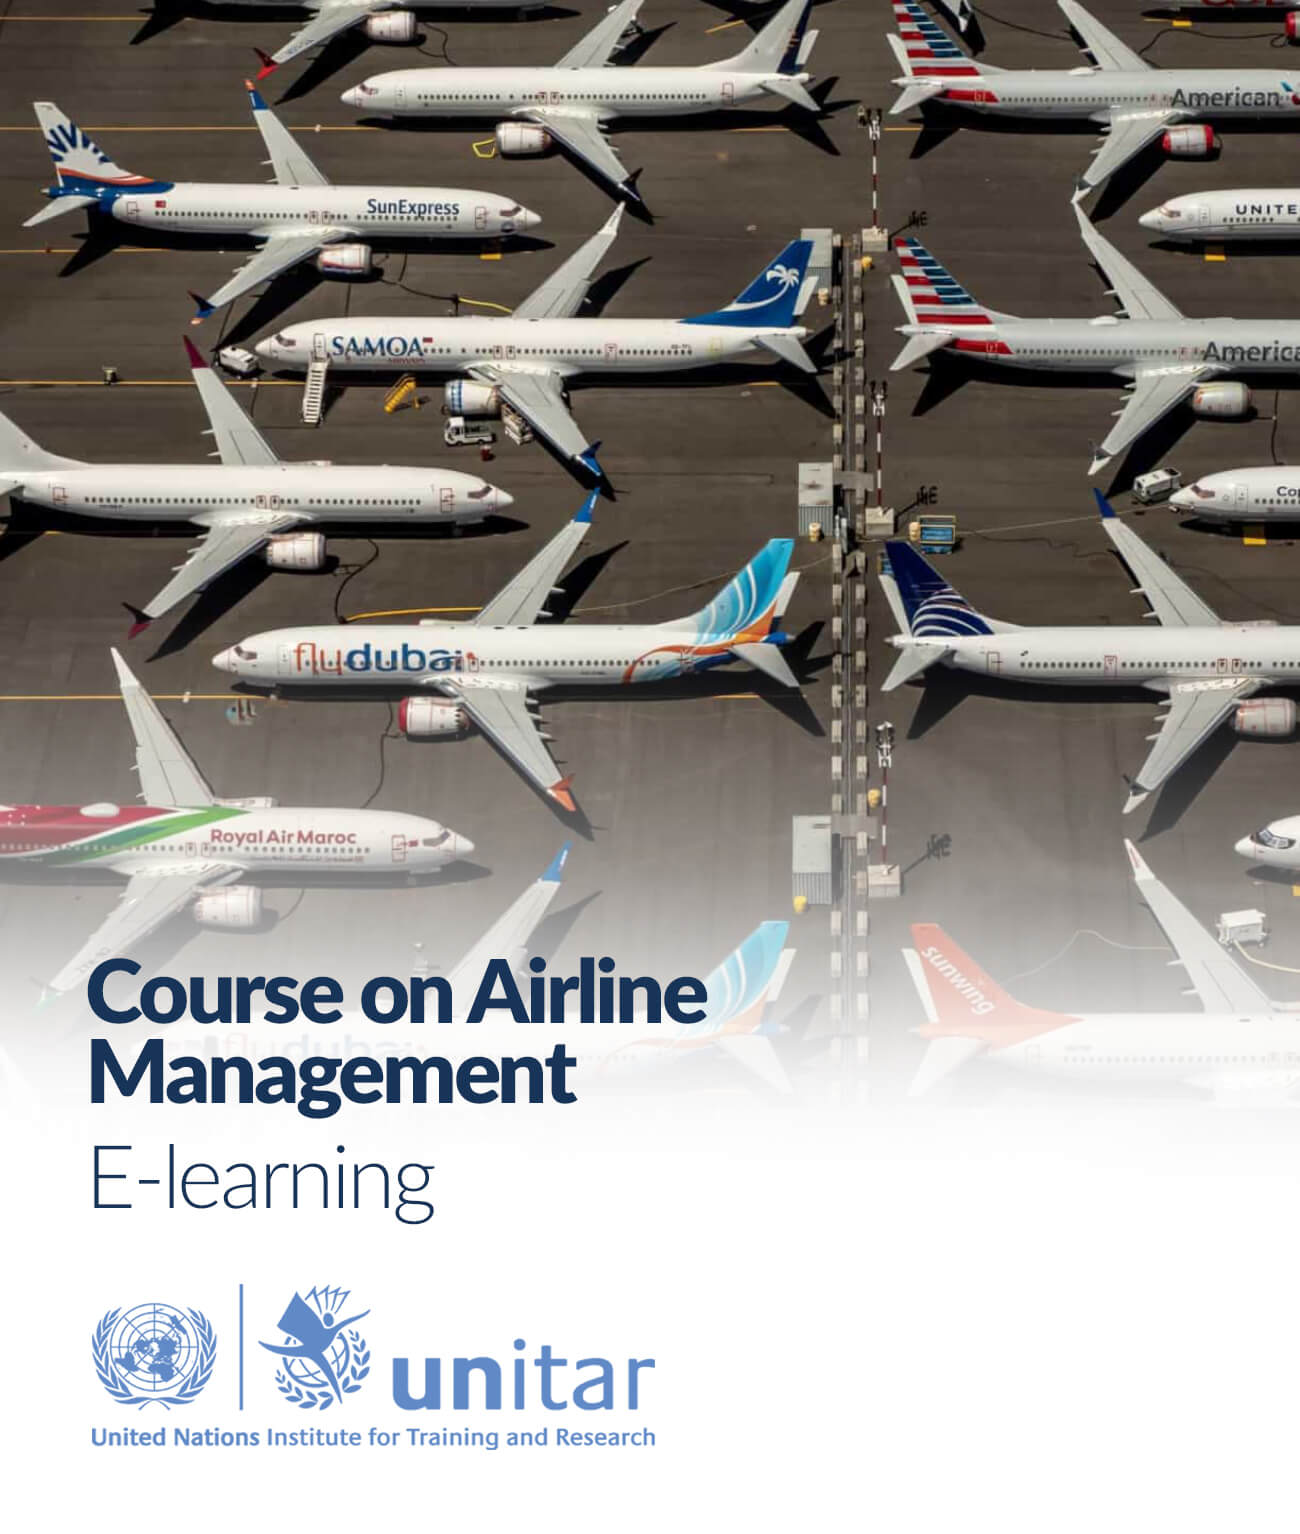 courseairline - Home